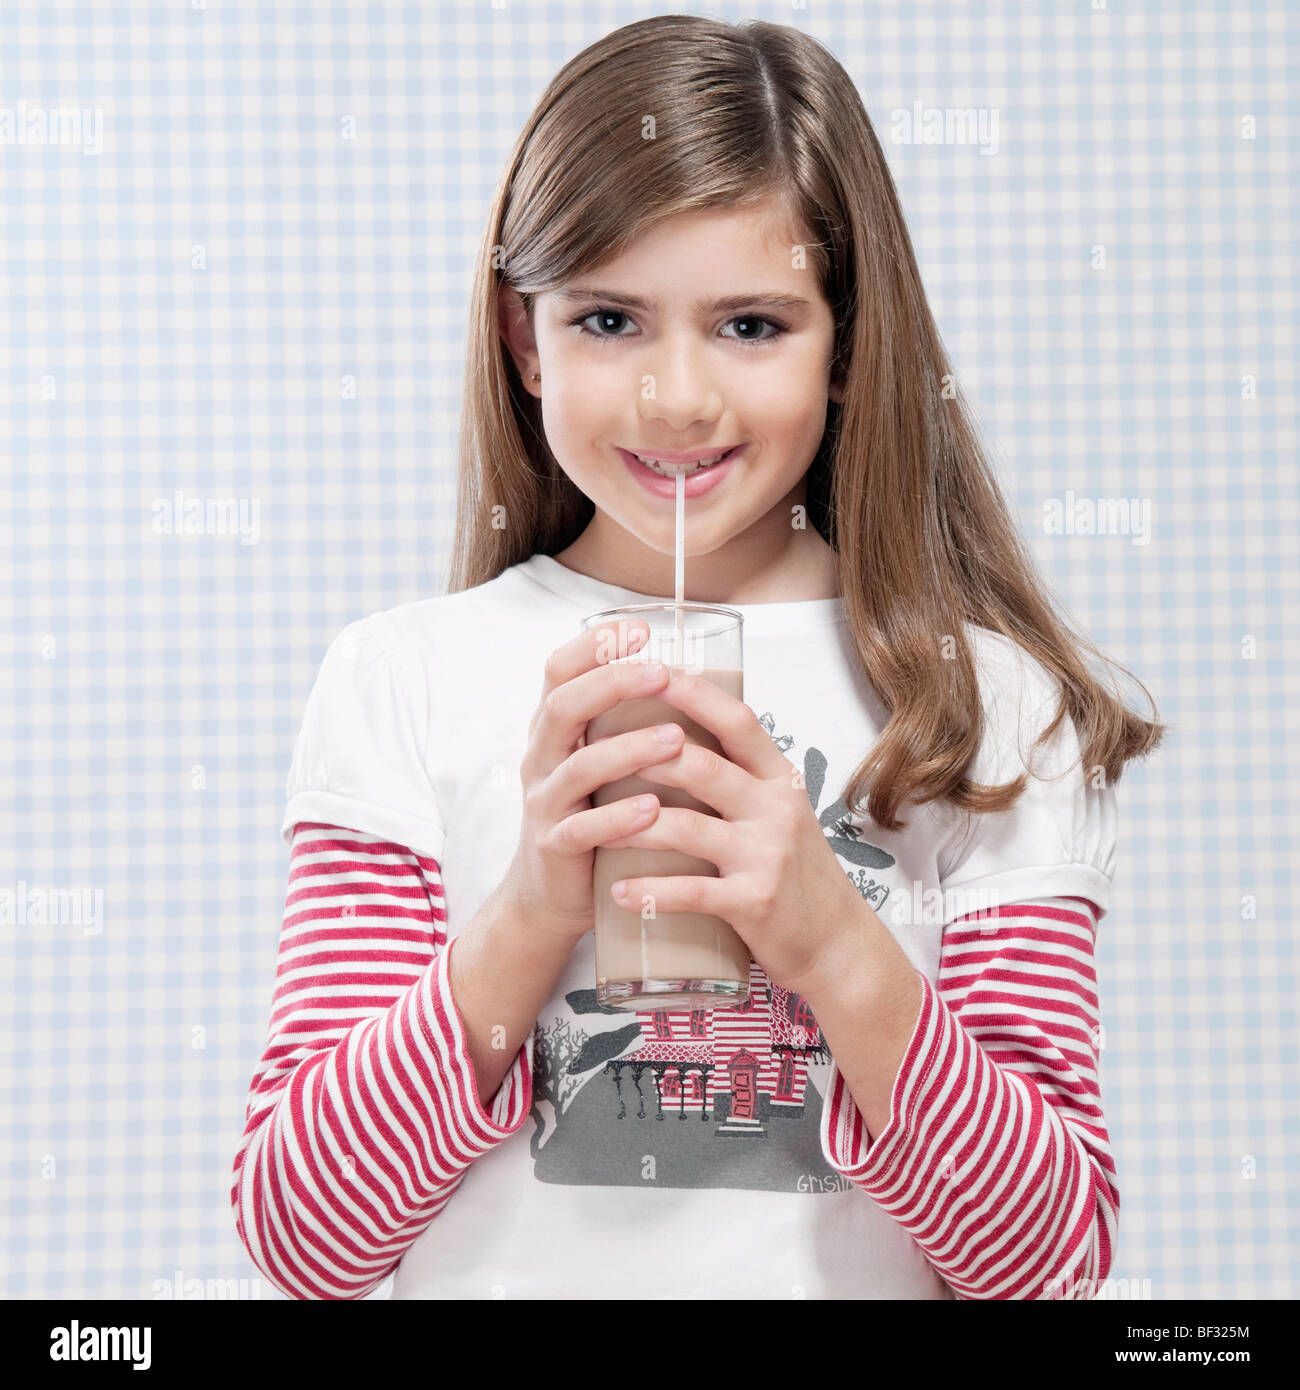 Girl drinking milk with a straw - Stock Image